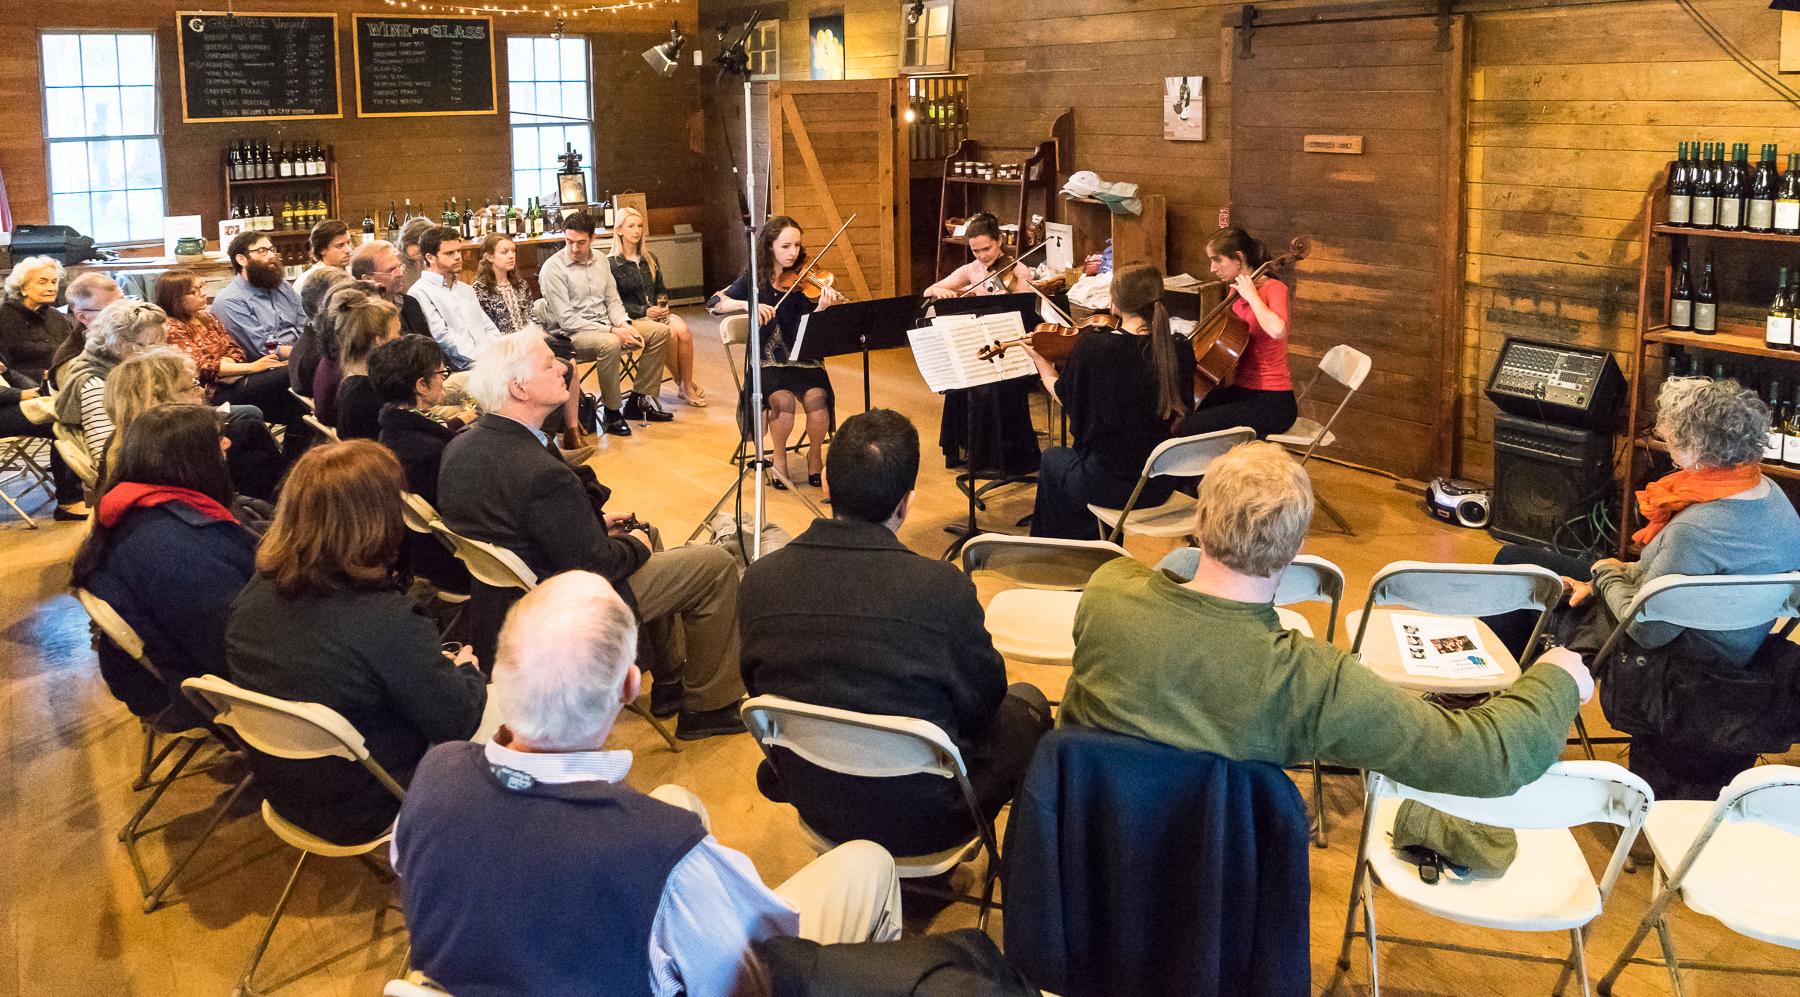 STring Quartets by Gershwin, Schubert and Beethoven At greenvale vineyards